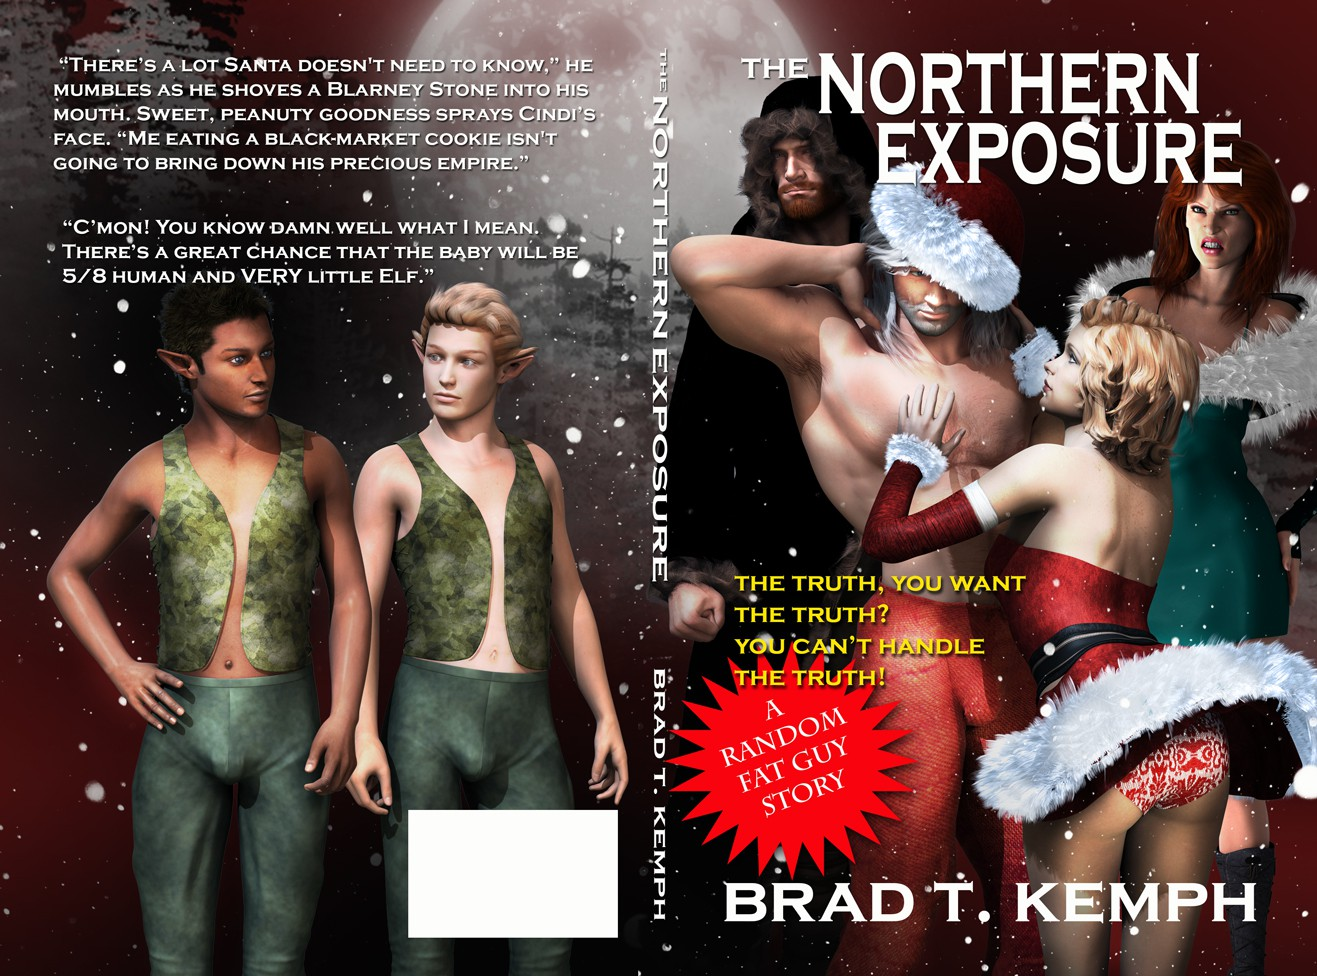 Create the next book or magazine cover for Brad Kemph